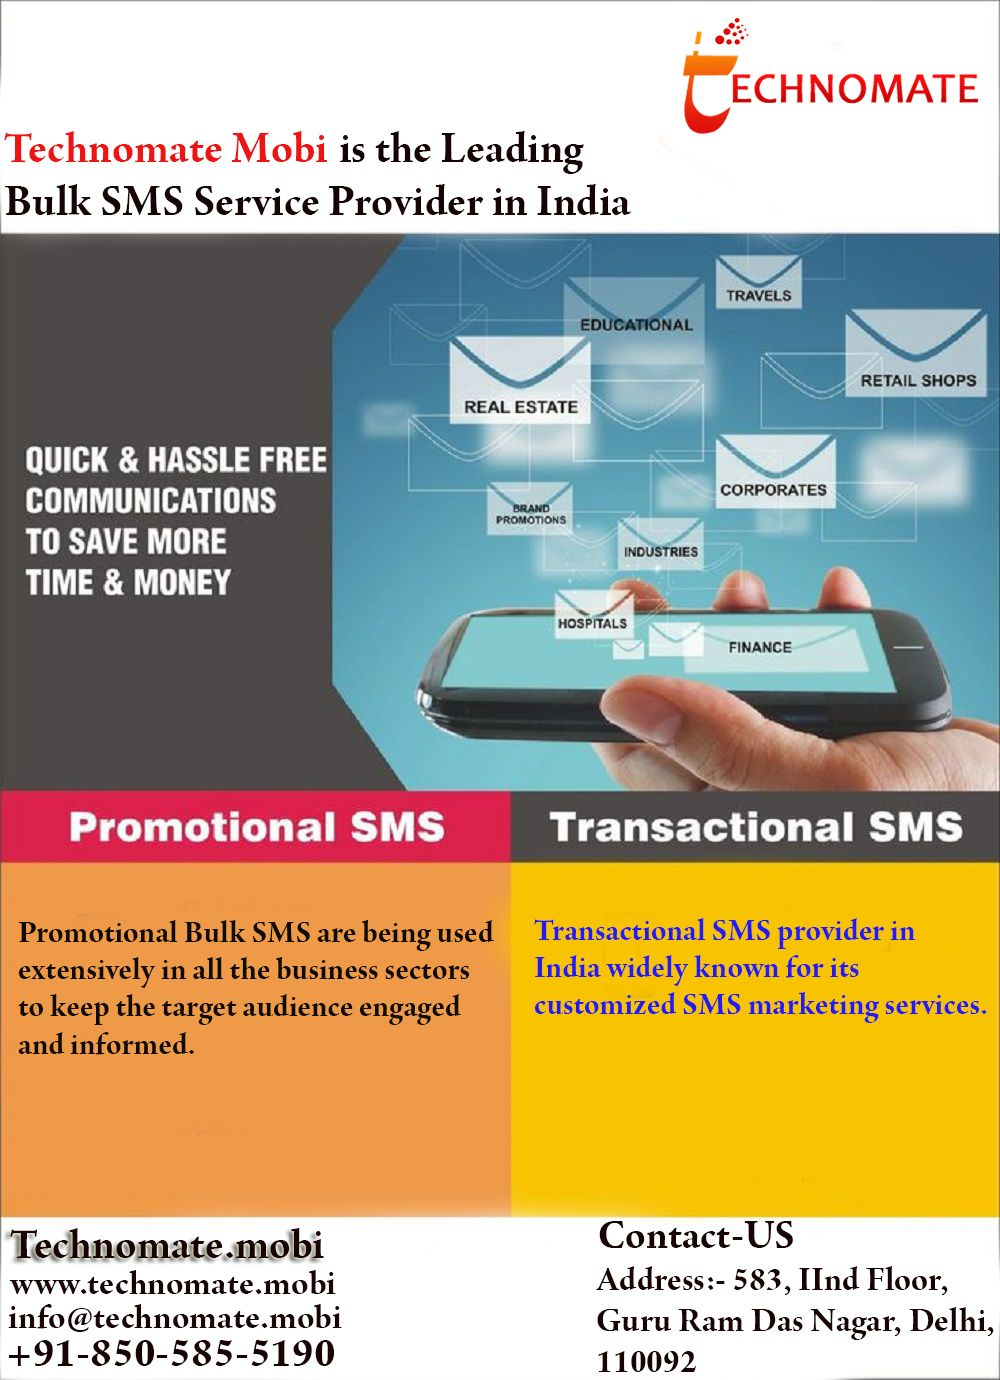 Technomate Mobi is a leading provider of bulk SMS Services in Delhi